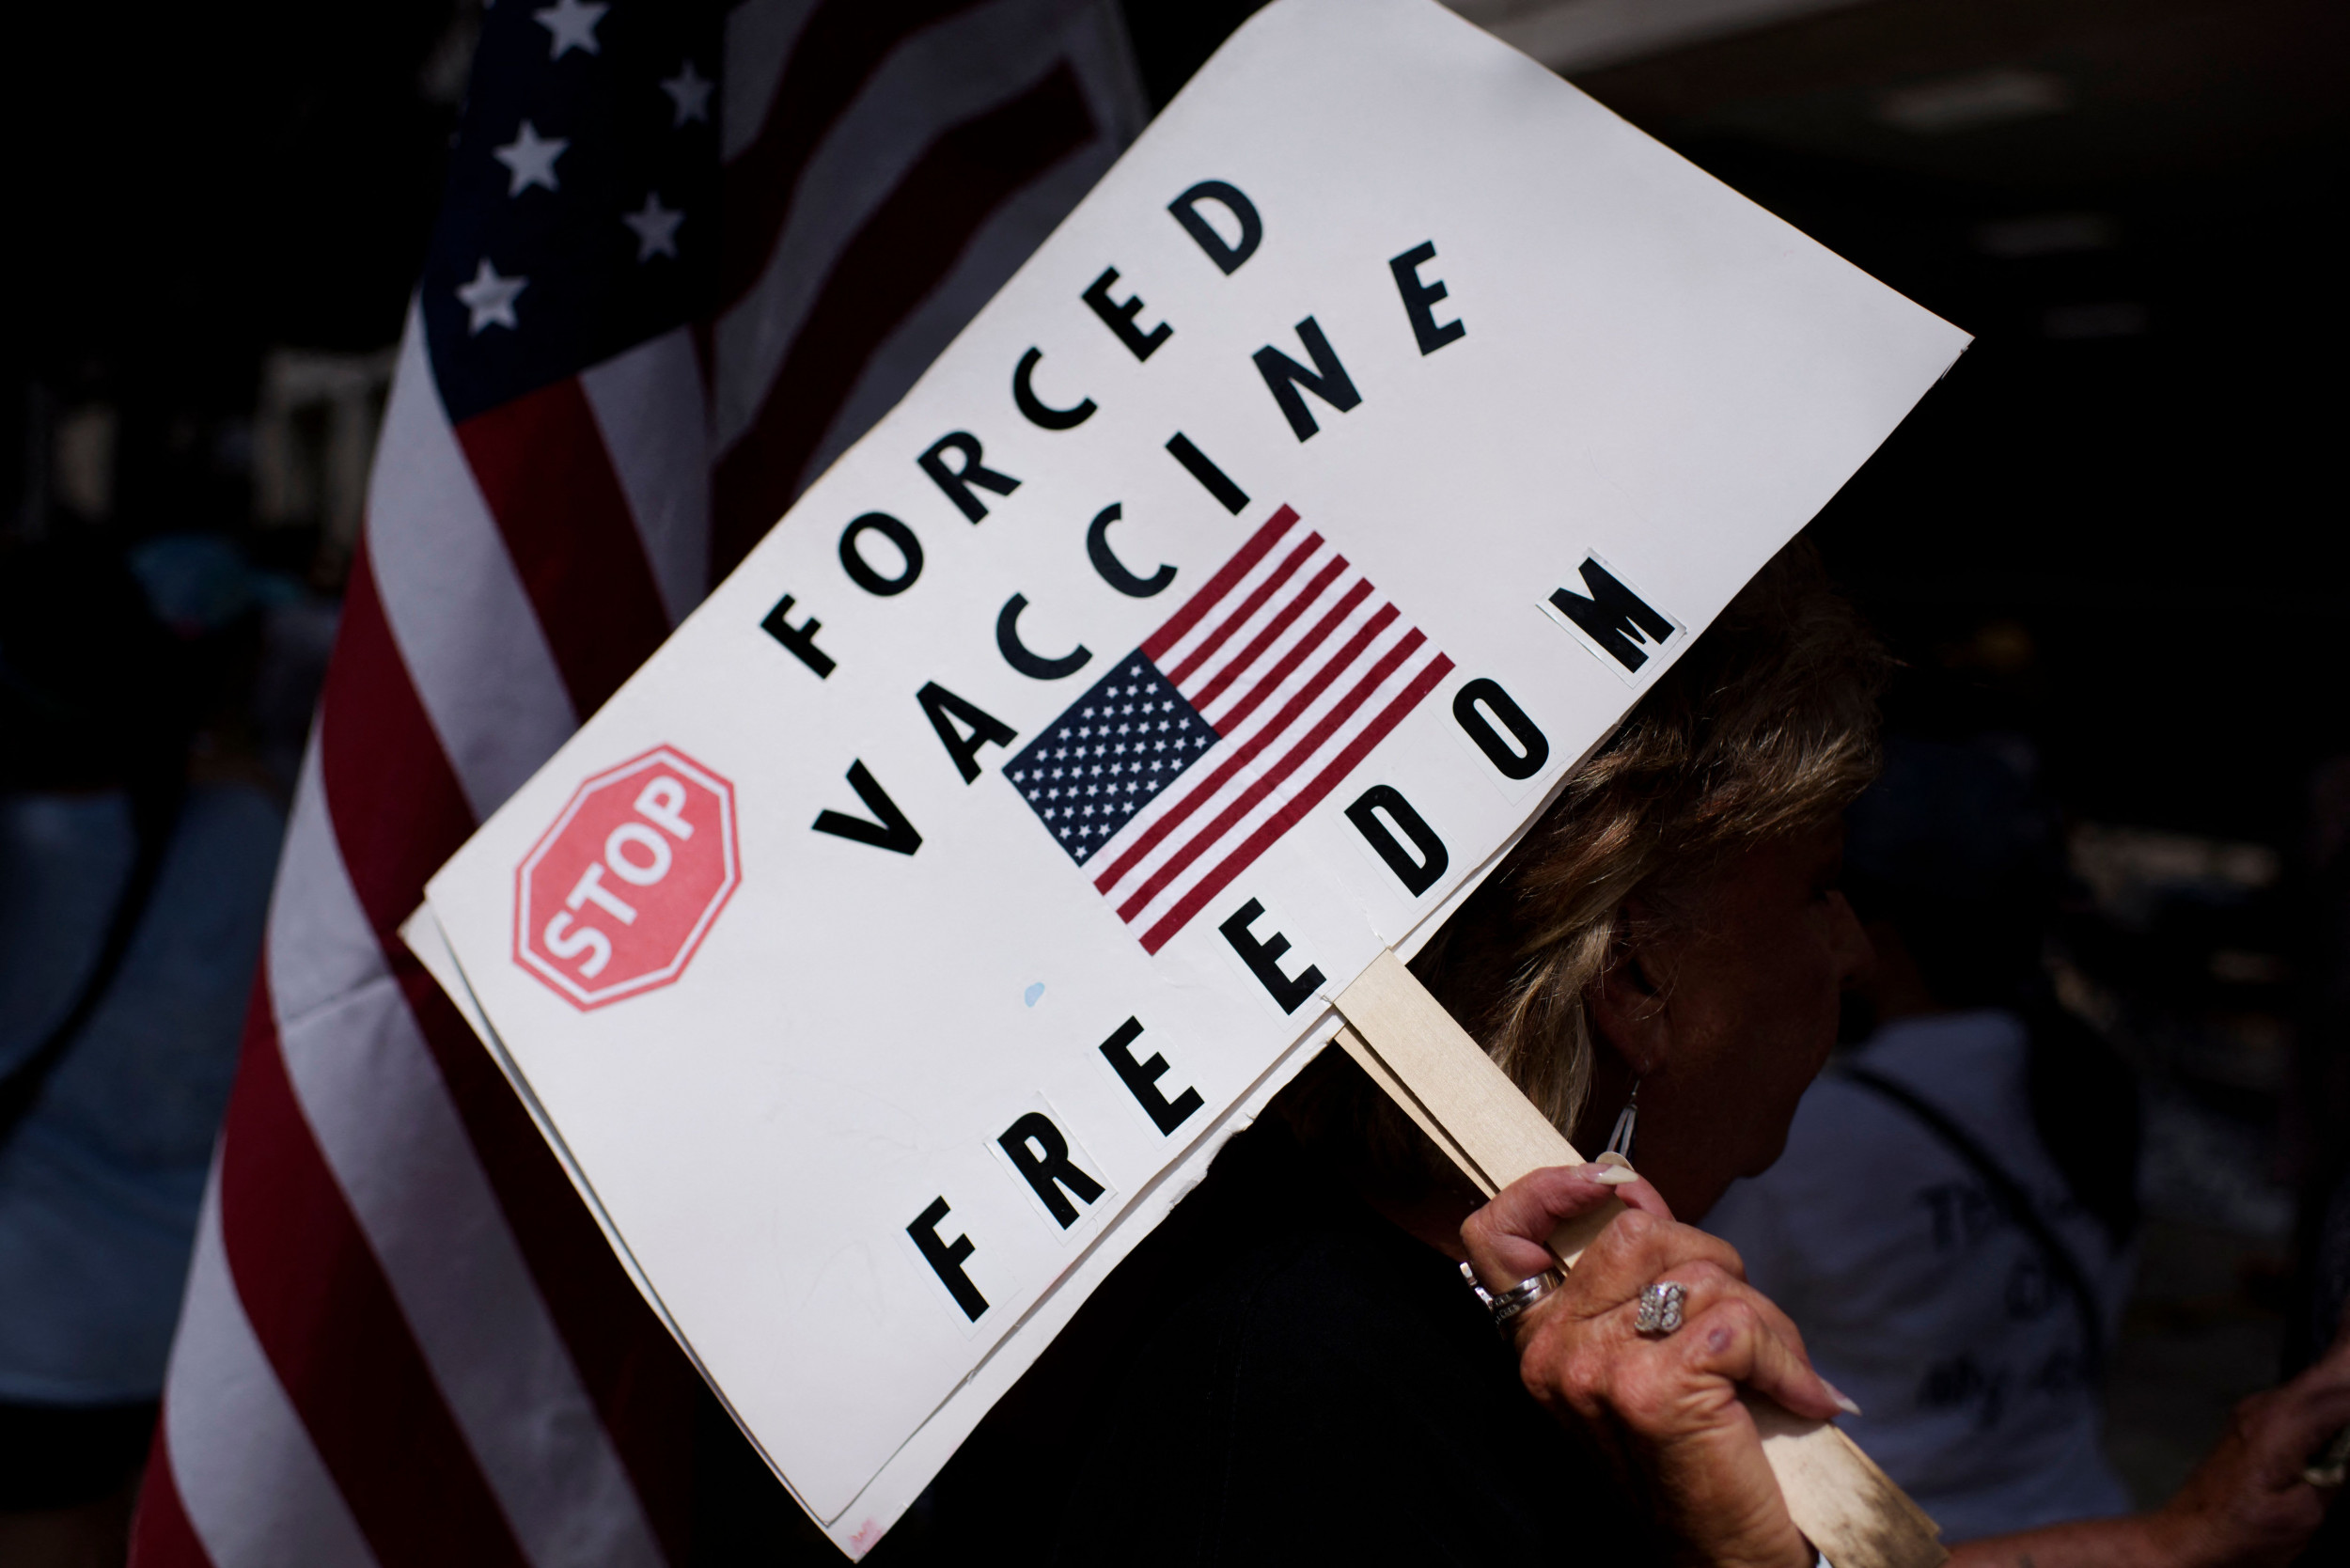 A new survey from YouGov and The Economist released Thursday reveals a startling number of Americans will not get vaccinated due to concerns about sid